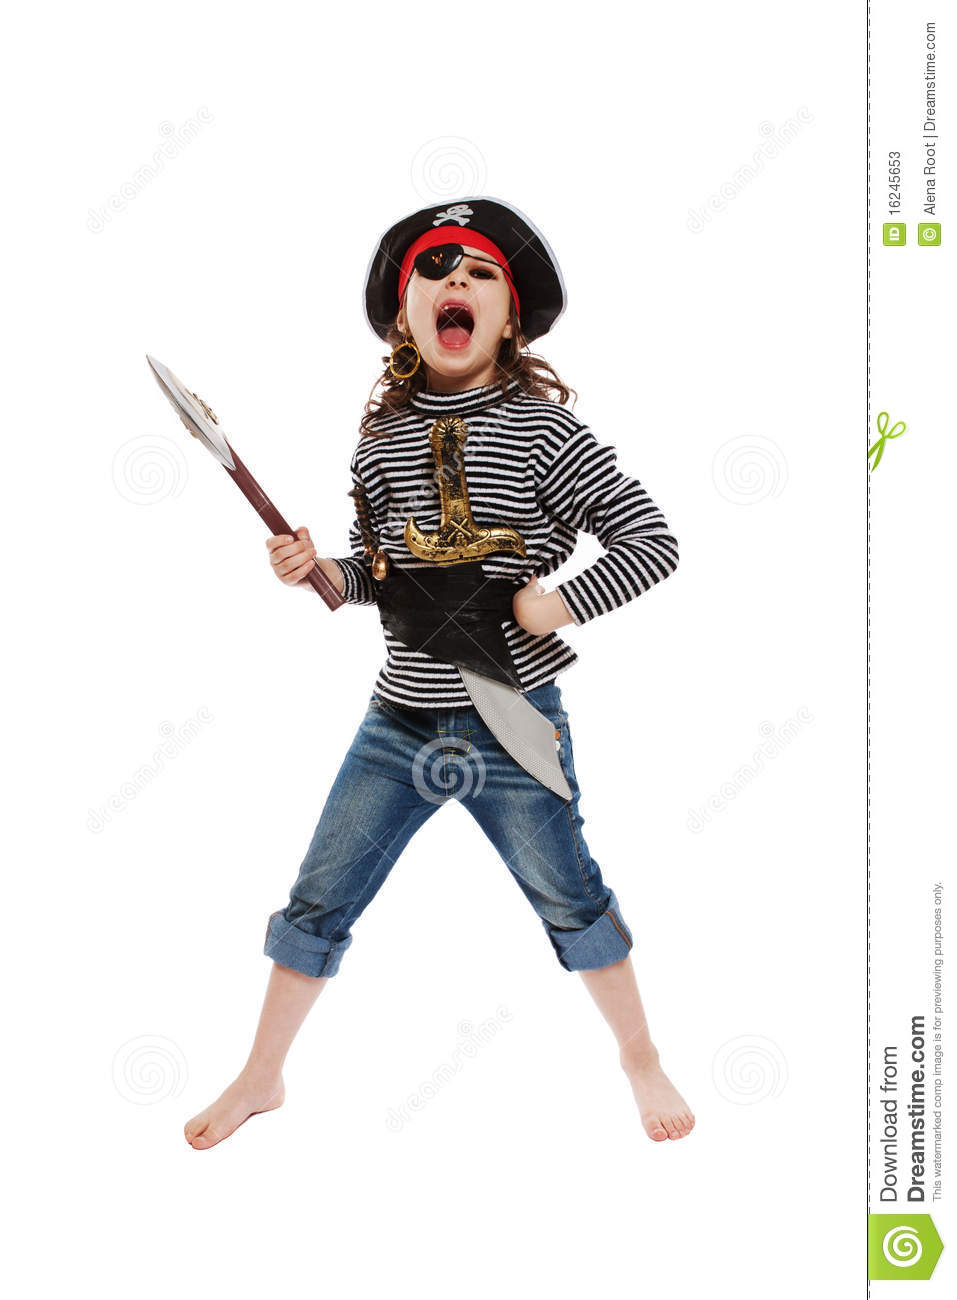 Little Girl In Pirate's Costume Stock Photos - Image: 16245653